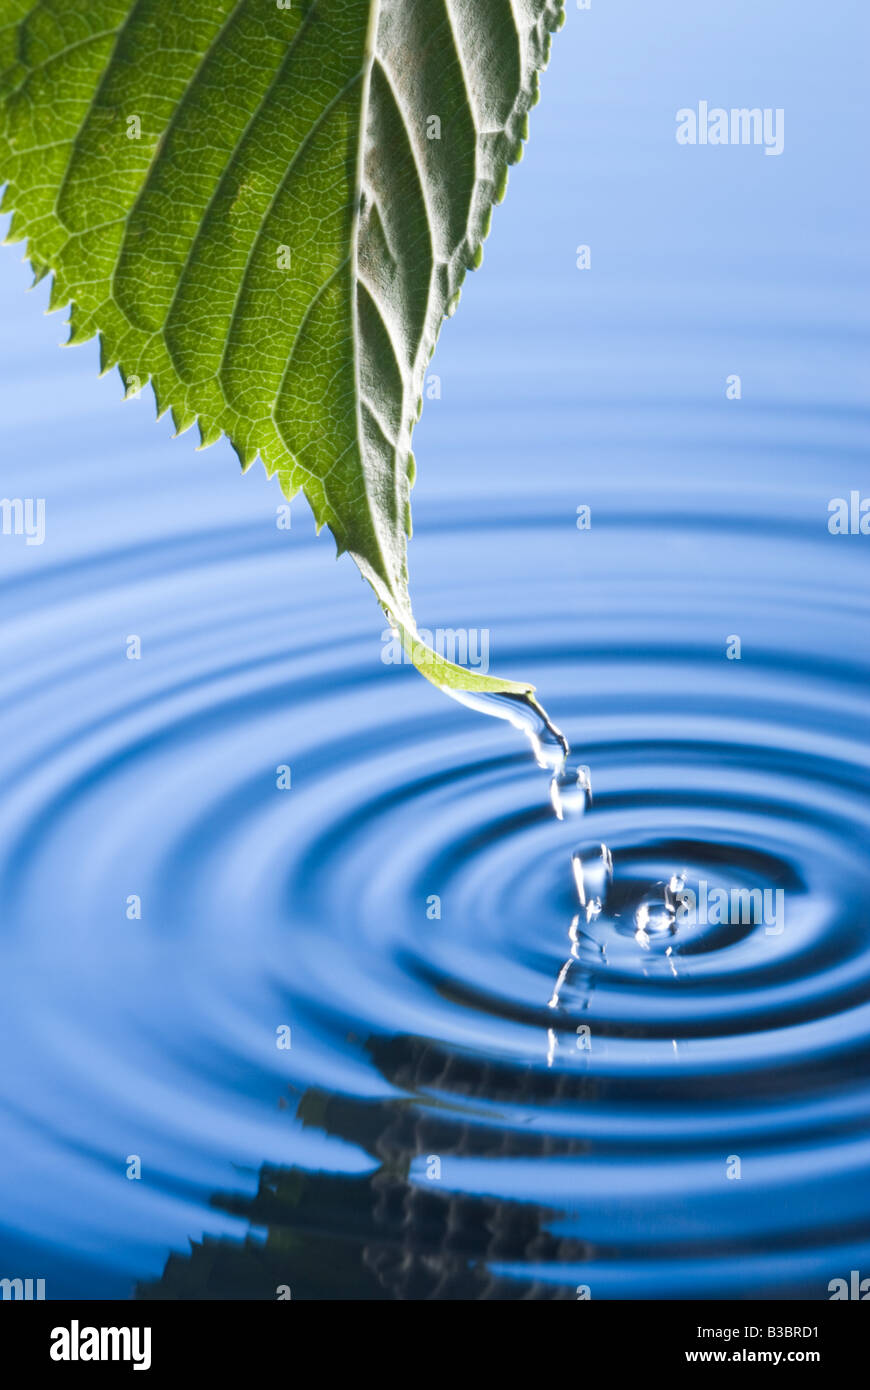 Water droplets falling from leaf causing ripples. Flowering cherry tree leaf. - Stock Image